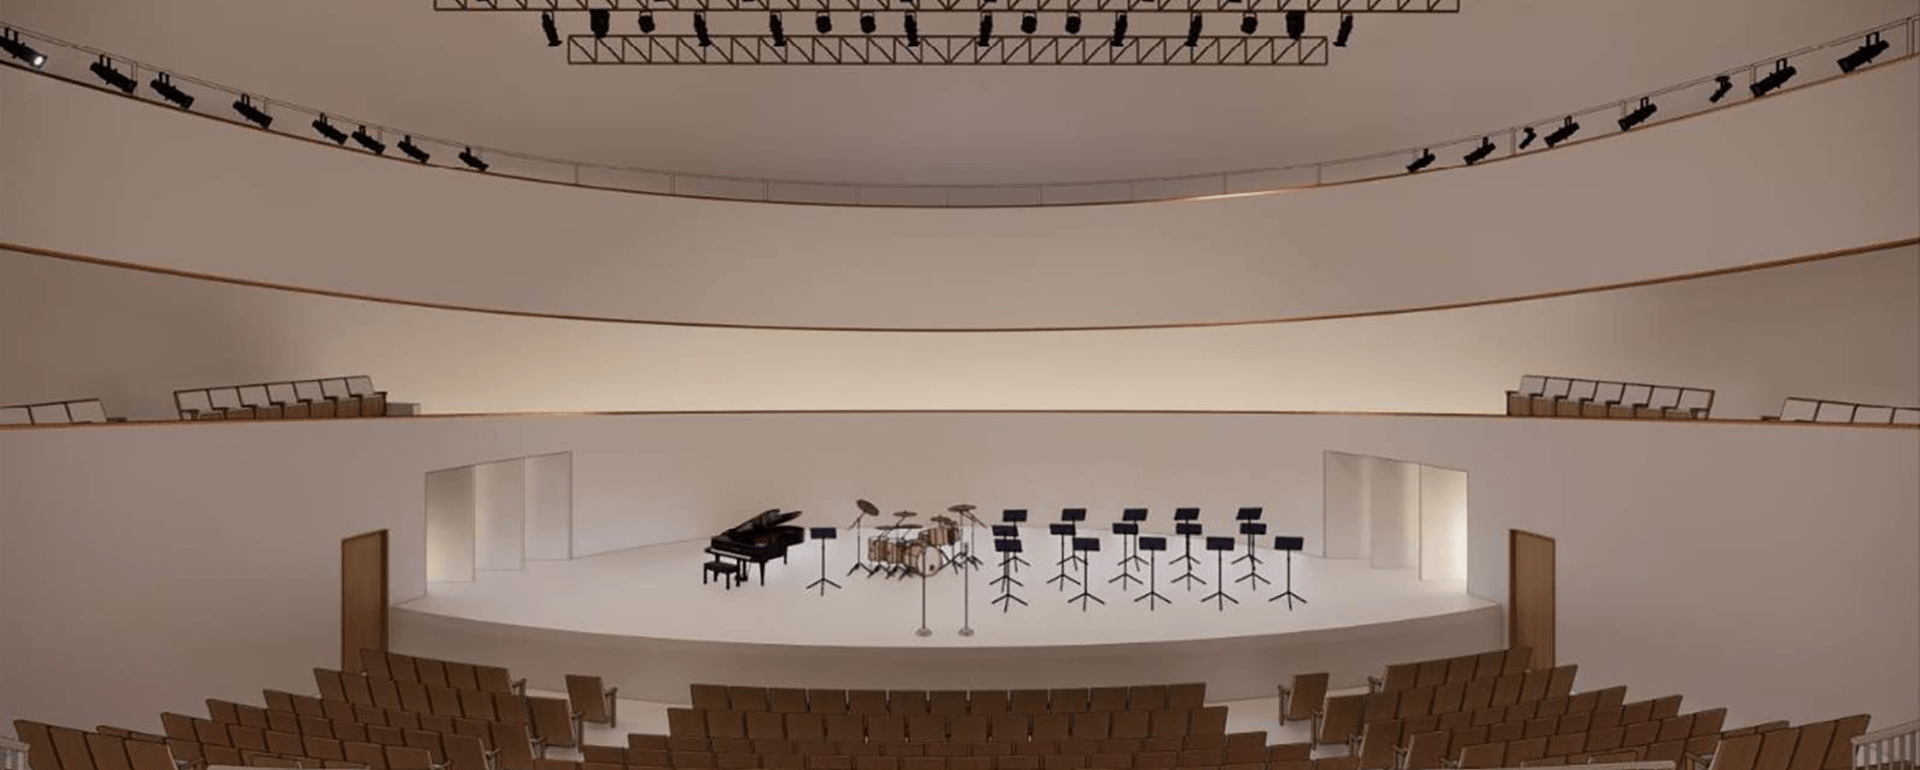 Architect's rendering of a large performance space with musical instruments on stage